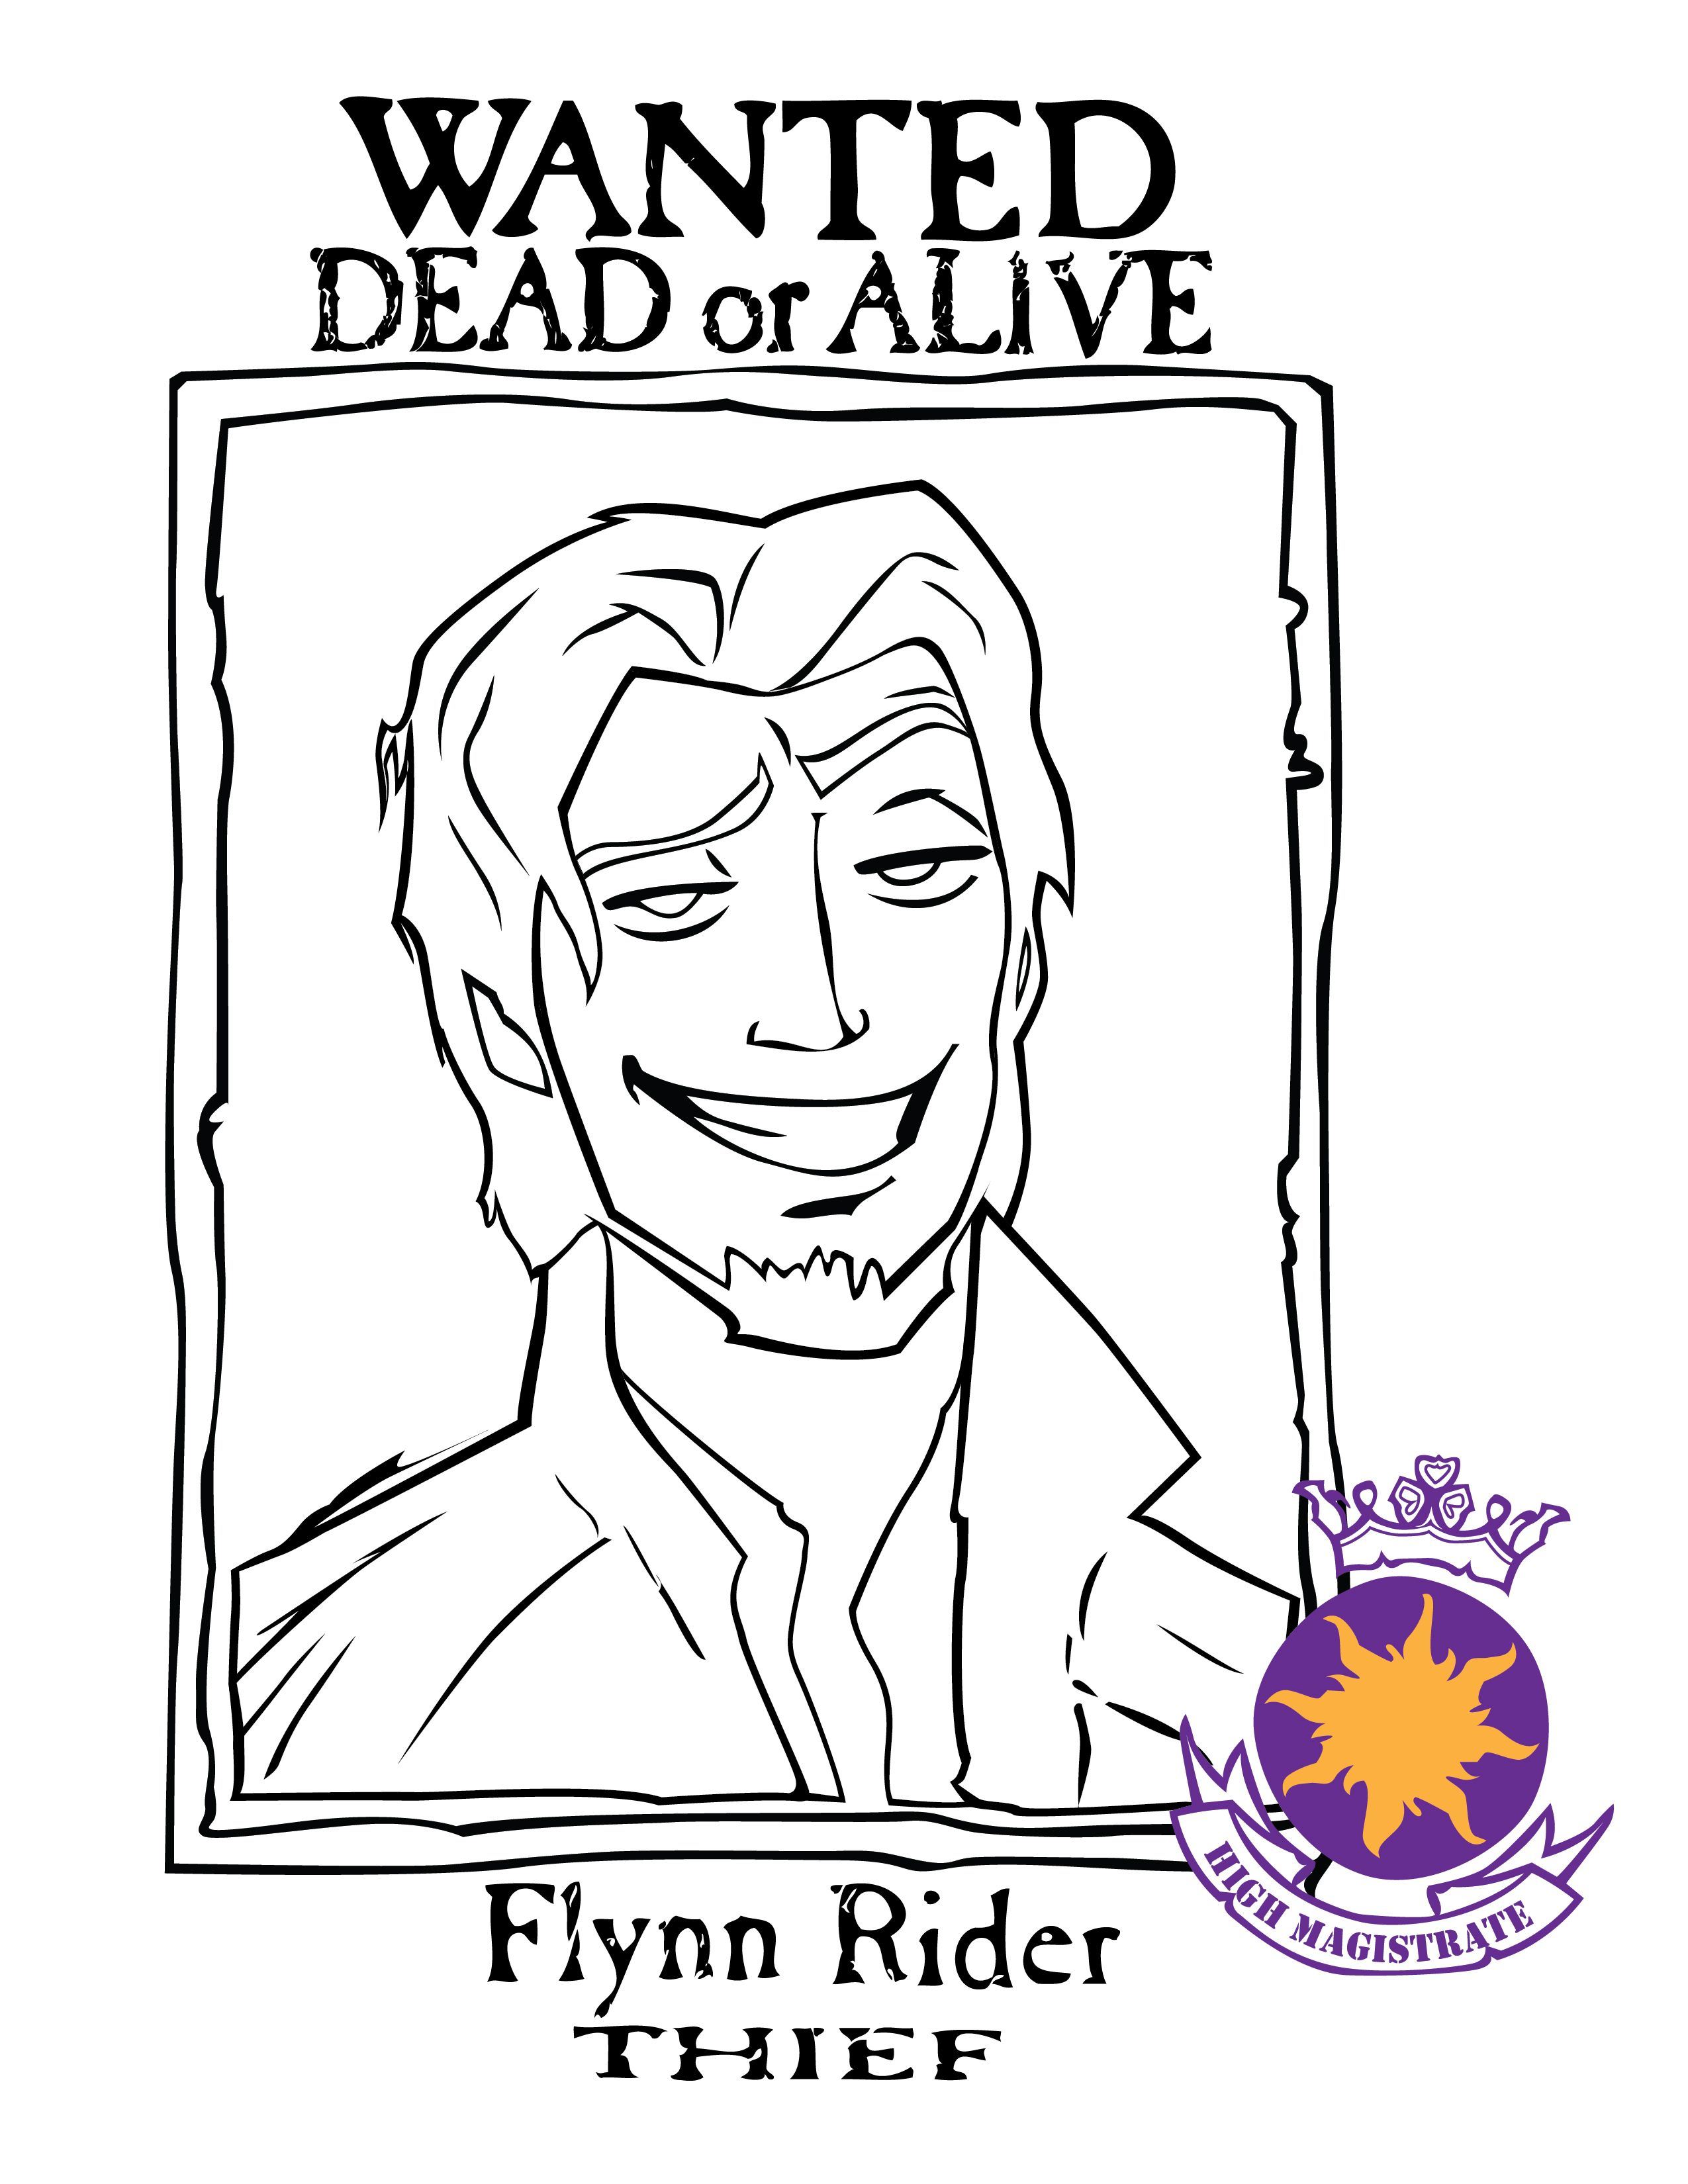 Flynn Rider Wanted Poster | A Tangled Party:) In 2019 | Pinterest - Free Printable Flynn Rider Wanted Poster